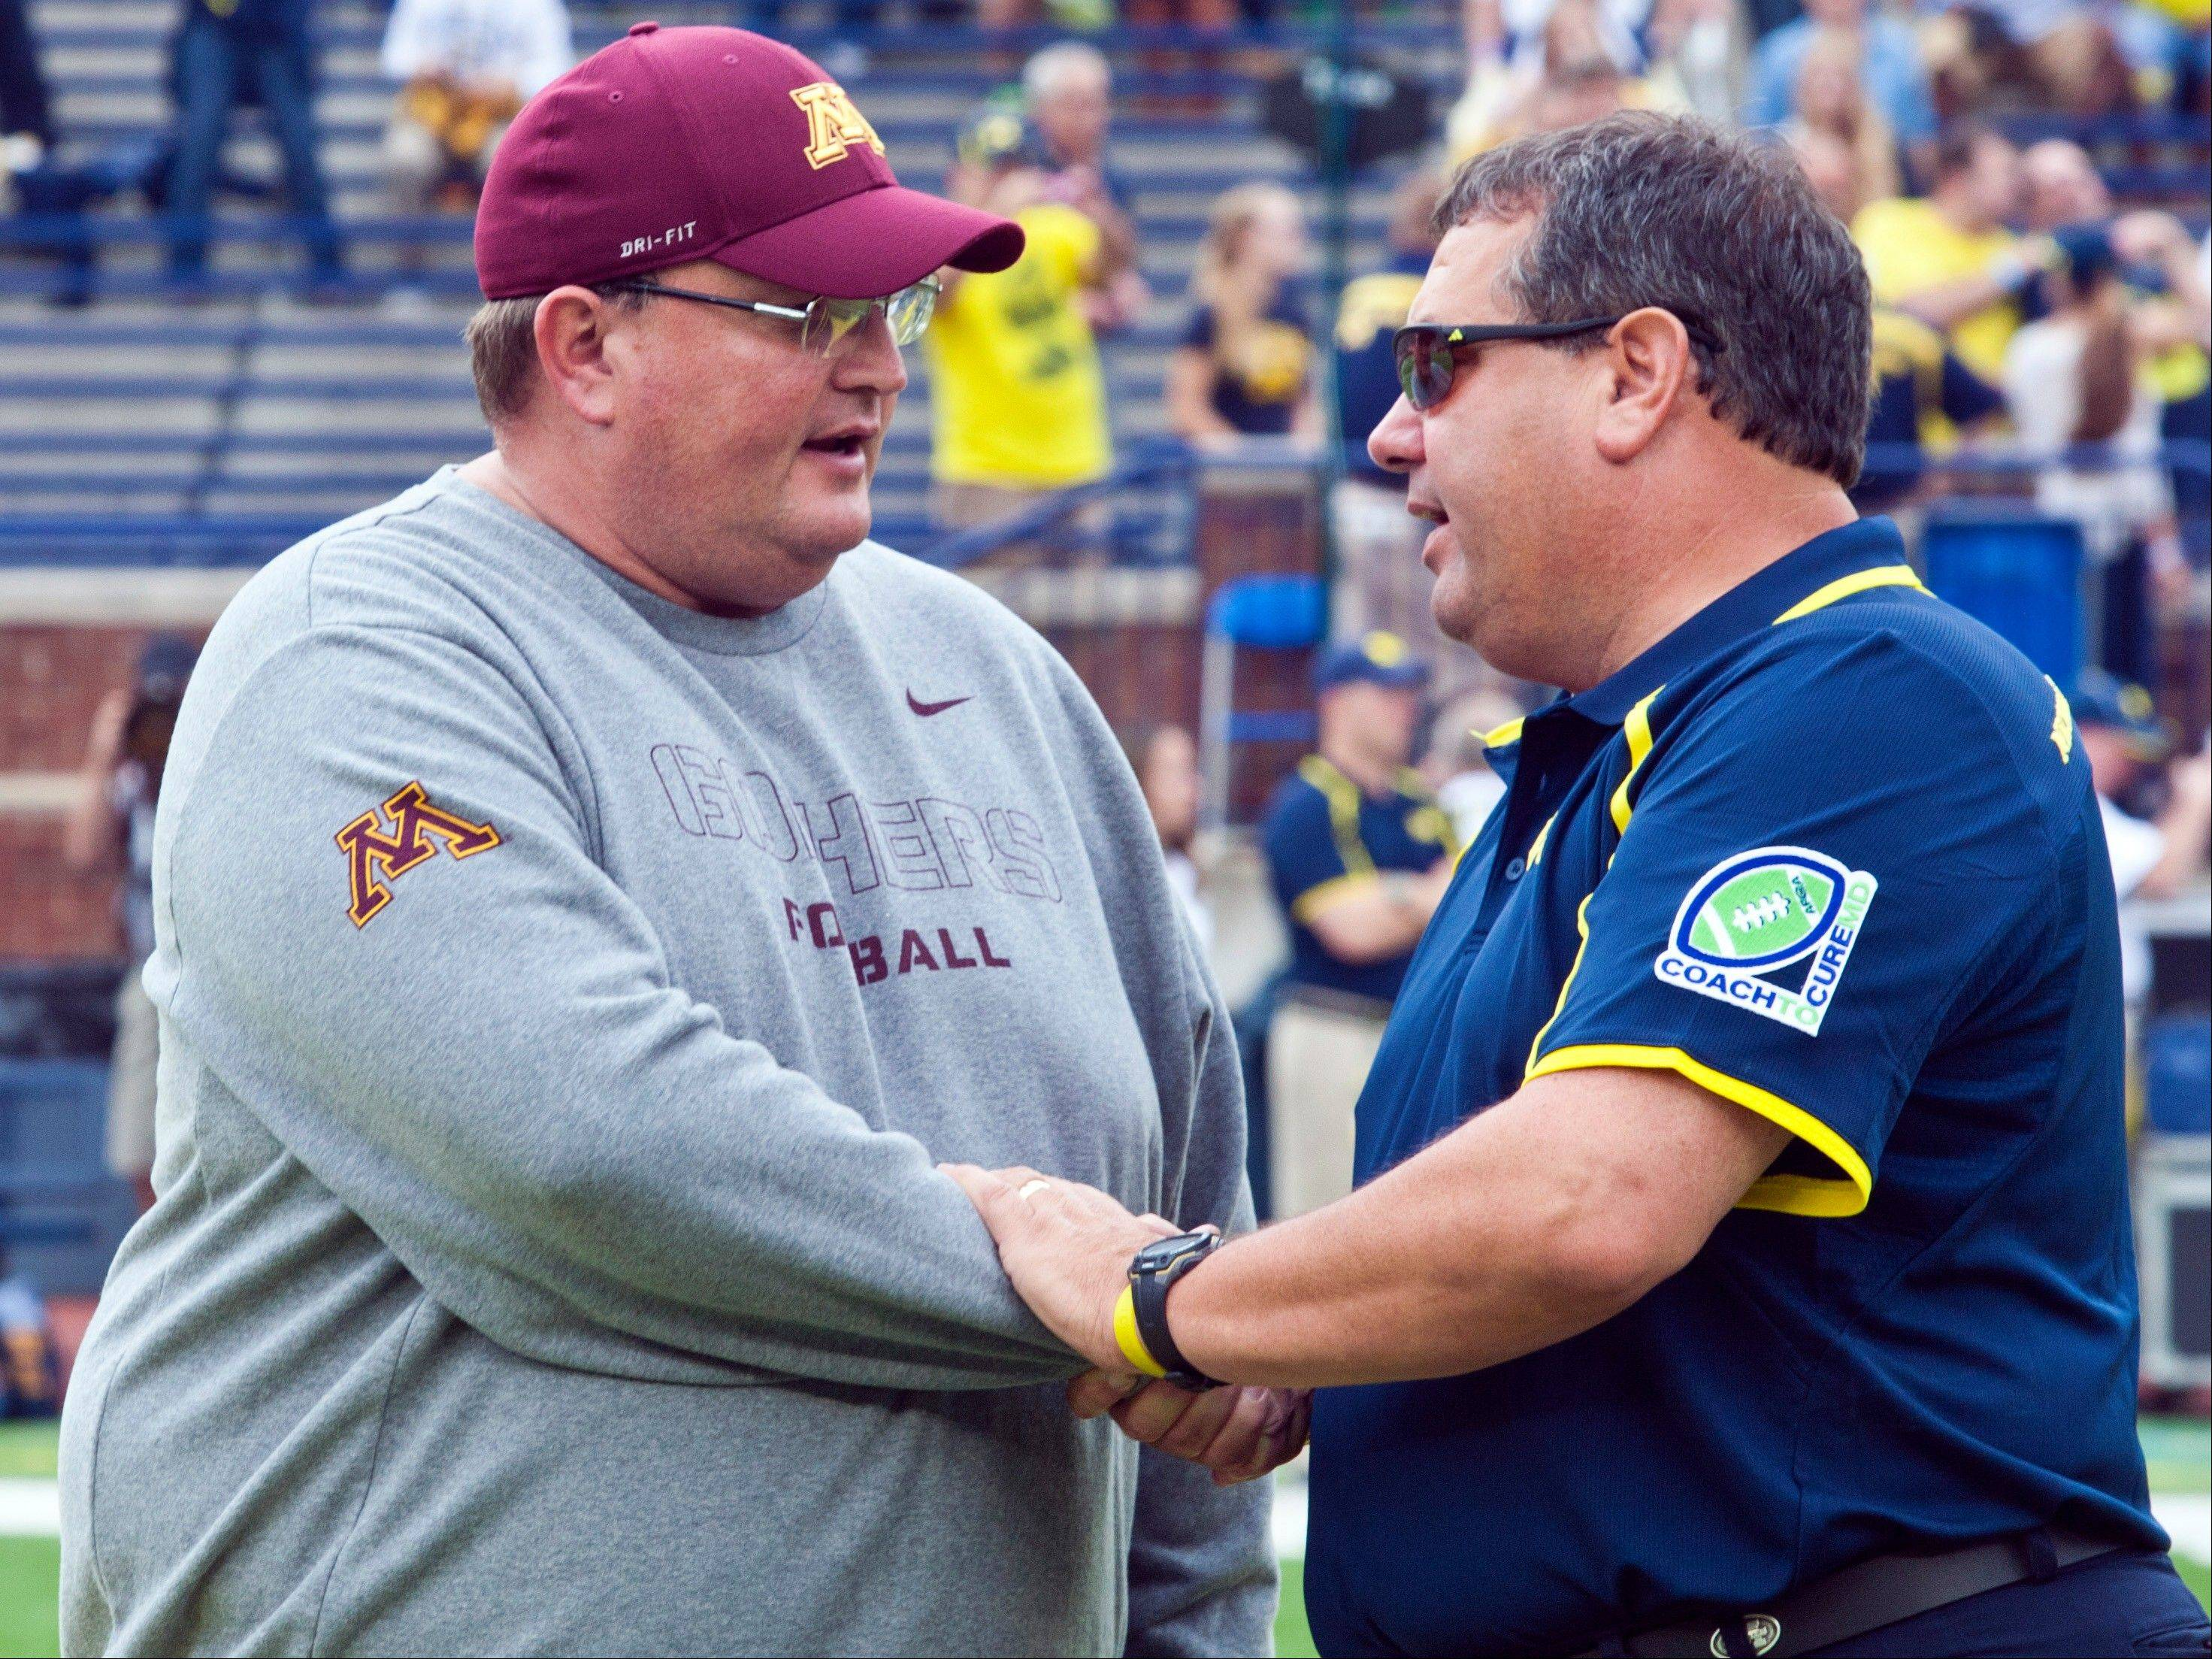 Minnesota defensive coordinator and acting head coach Tracy Claeys, left, shakes hands with Michigan head coach Brady Hoke before an NCAA college football game, Saturday, Oct. 5, 2013, in Ann Arbor, Mich. Minnesota coach Jerry Kill has suffered another seizure and did not make the trip.